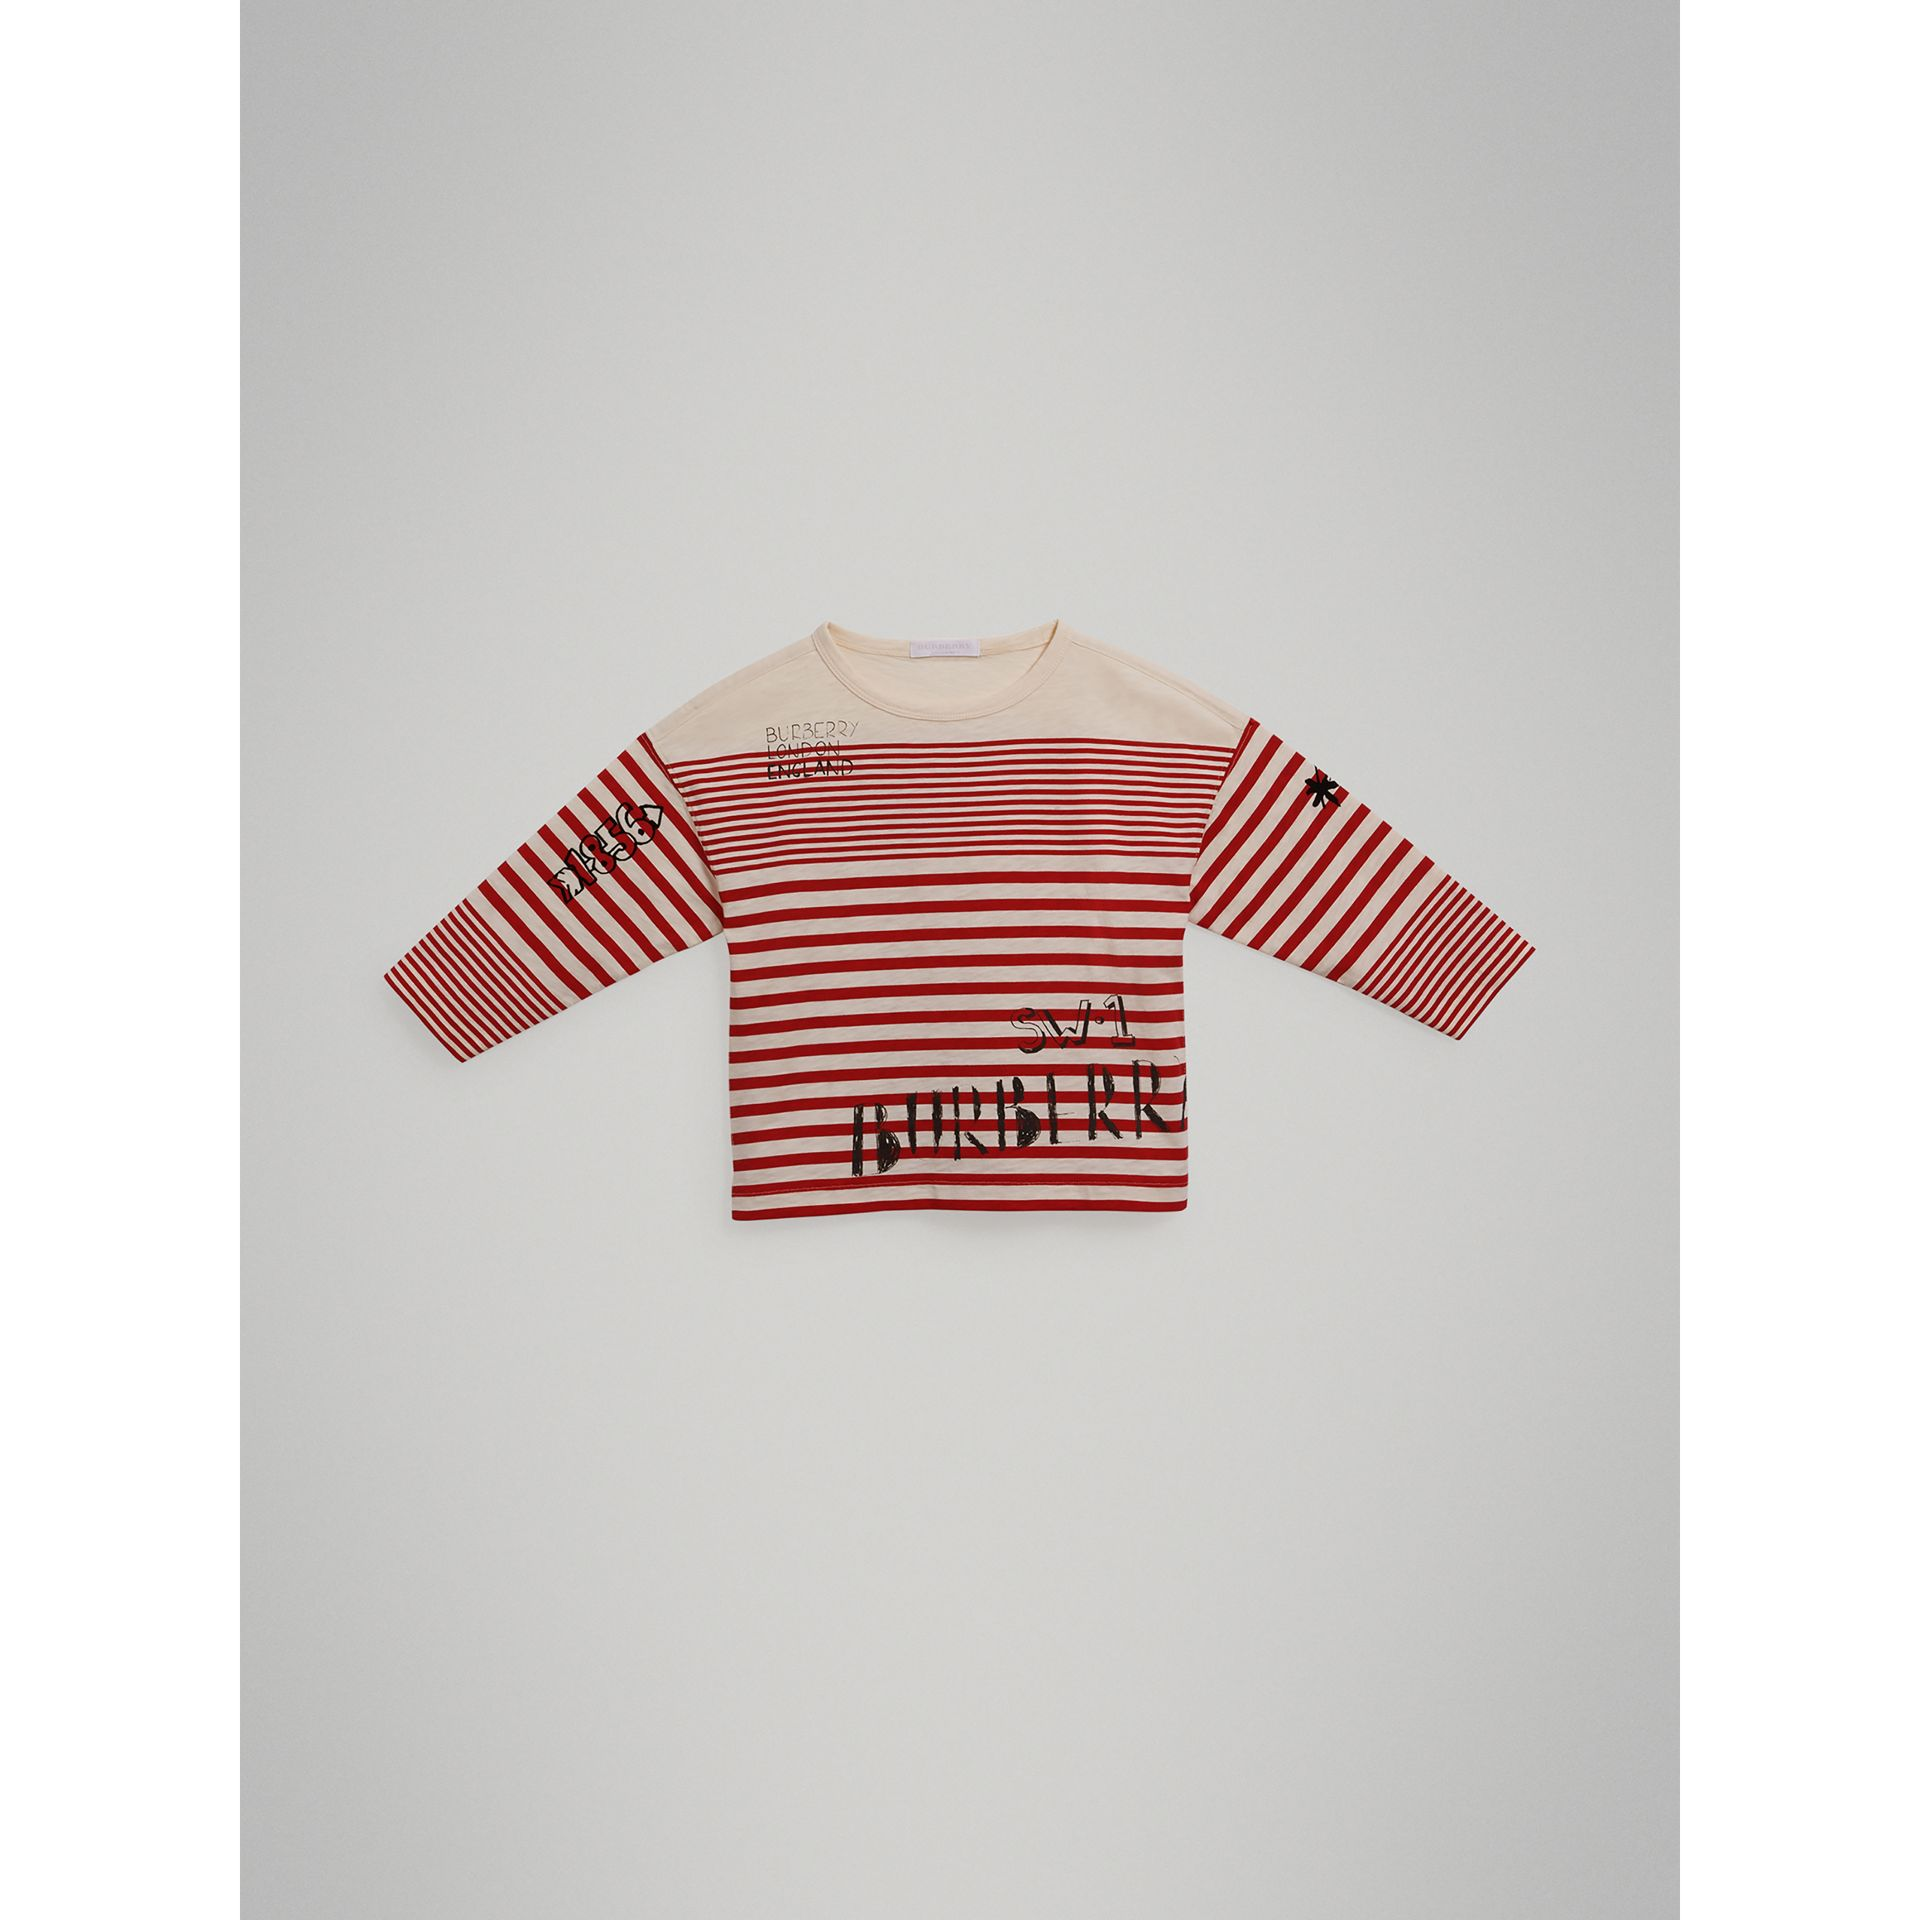 SW1 Print Striped Cotton Top in Bright Red/natural White - Boy | Burberry United Kingdom - gallery image 0